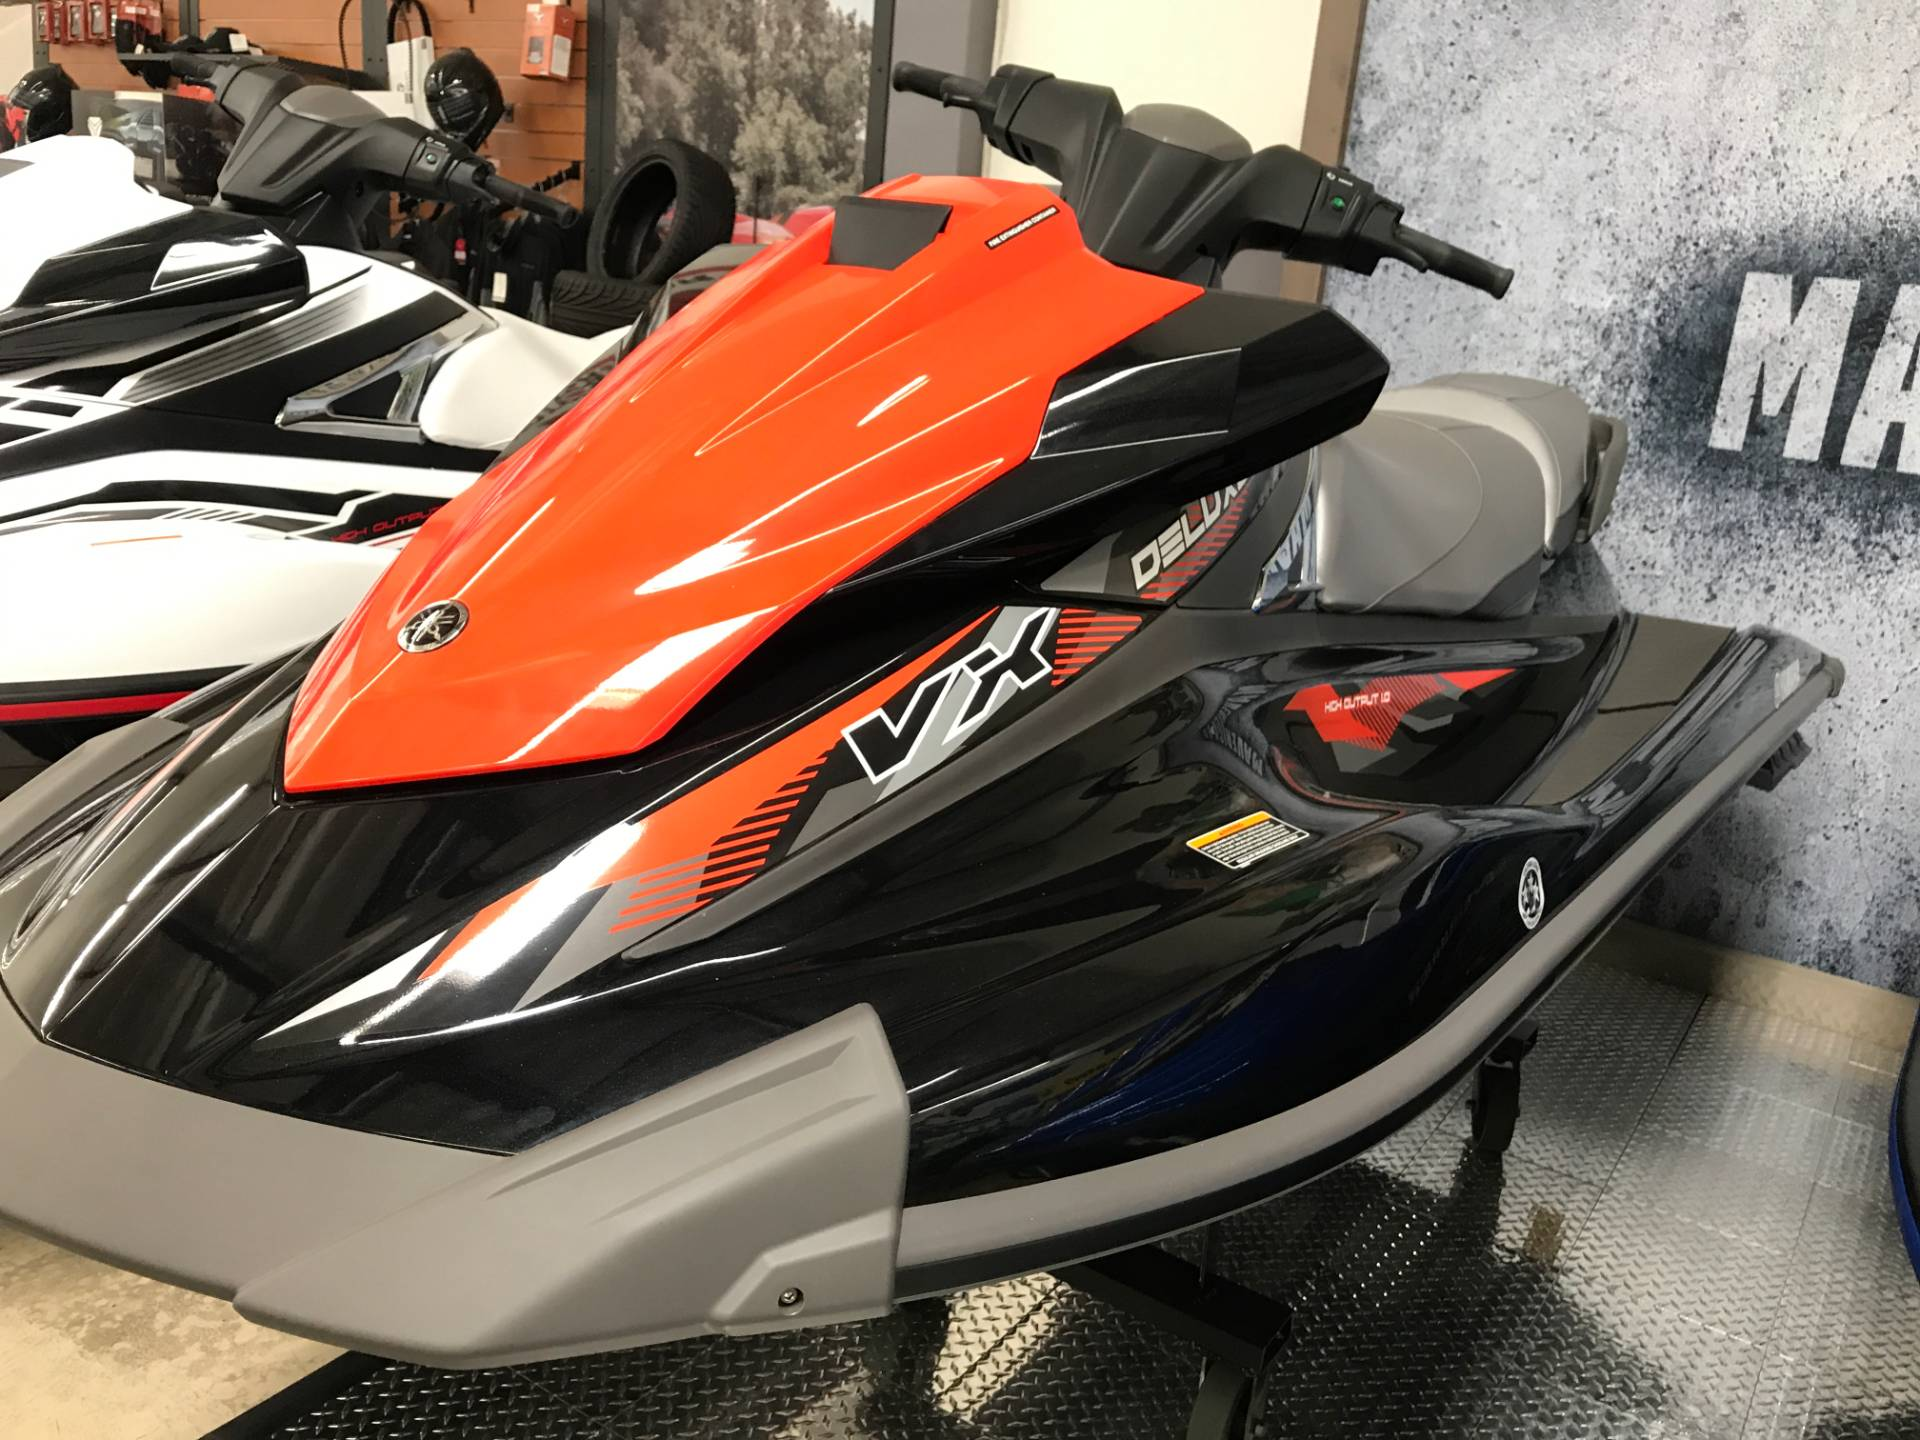 2017 Yamaha VX Deluxe for sale 124437